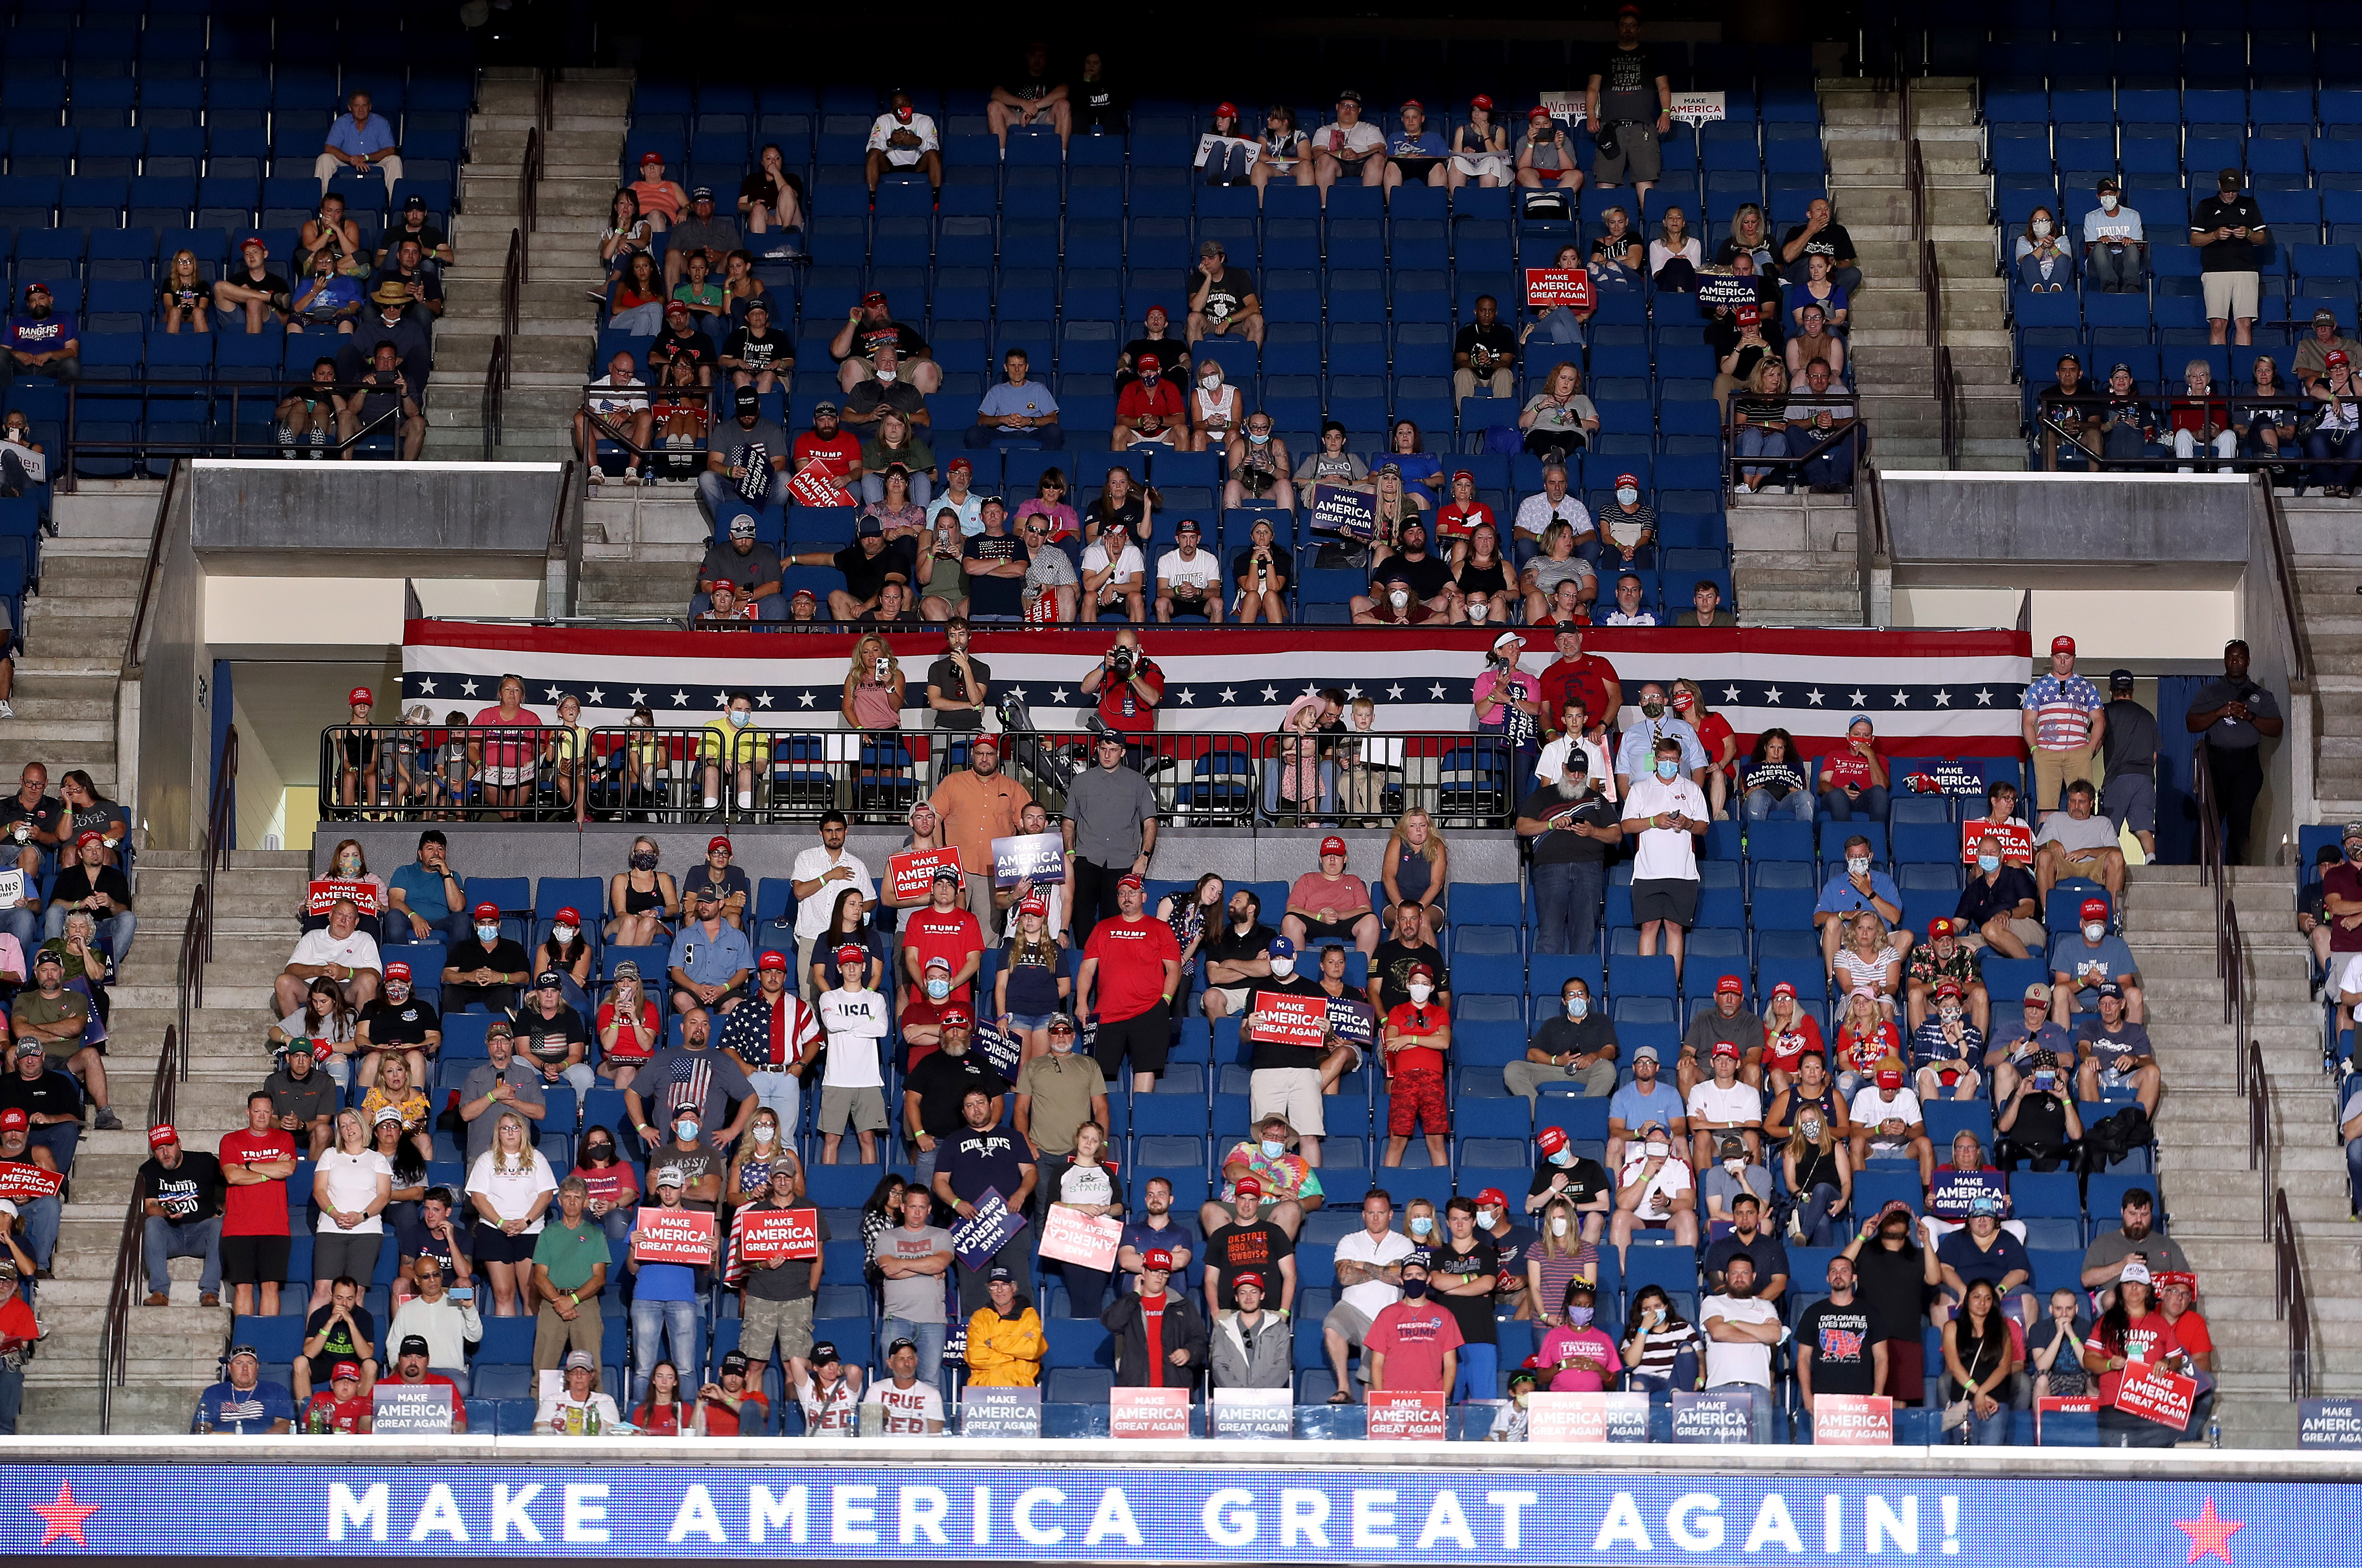 TULSA, OKLAHOMA - JUNE 20: Supporters listen as U.S. President Donald Trump speaksat  a campaign rally at the BOK Center, June 20, 2020 in Tulsa, Oklahoma. Trump is holding his first political rally since the start of the coronavirus pandemic at the BOK Center today while infection rates in the state of Oklahoma continue to rise. (Photo by Win McNamee/Getty Images)